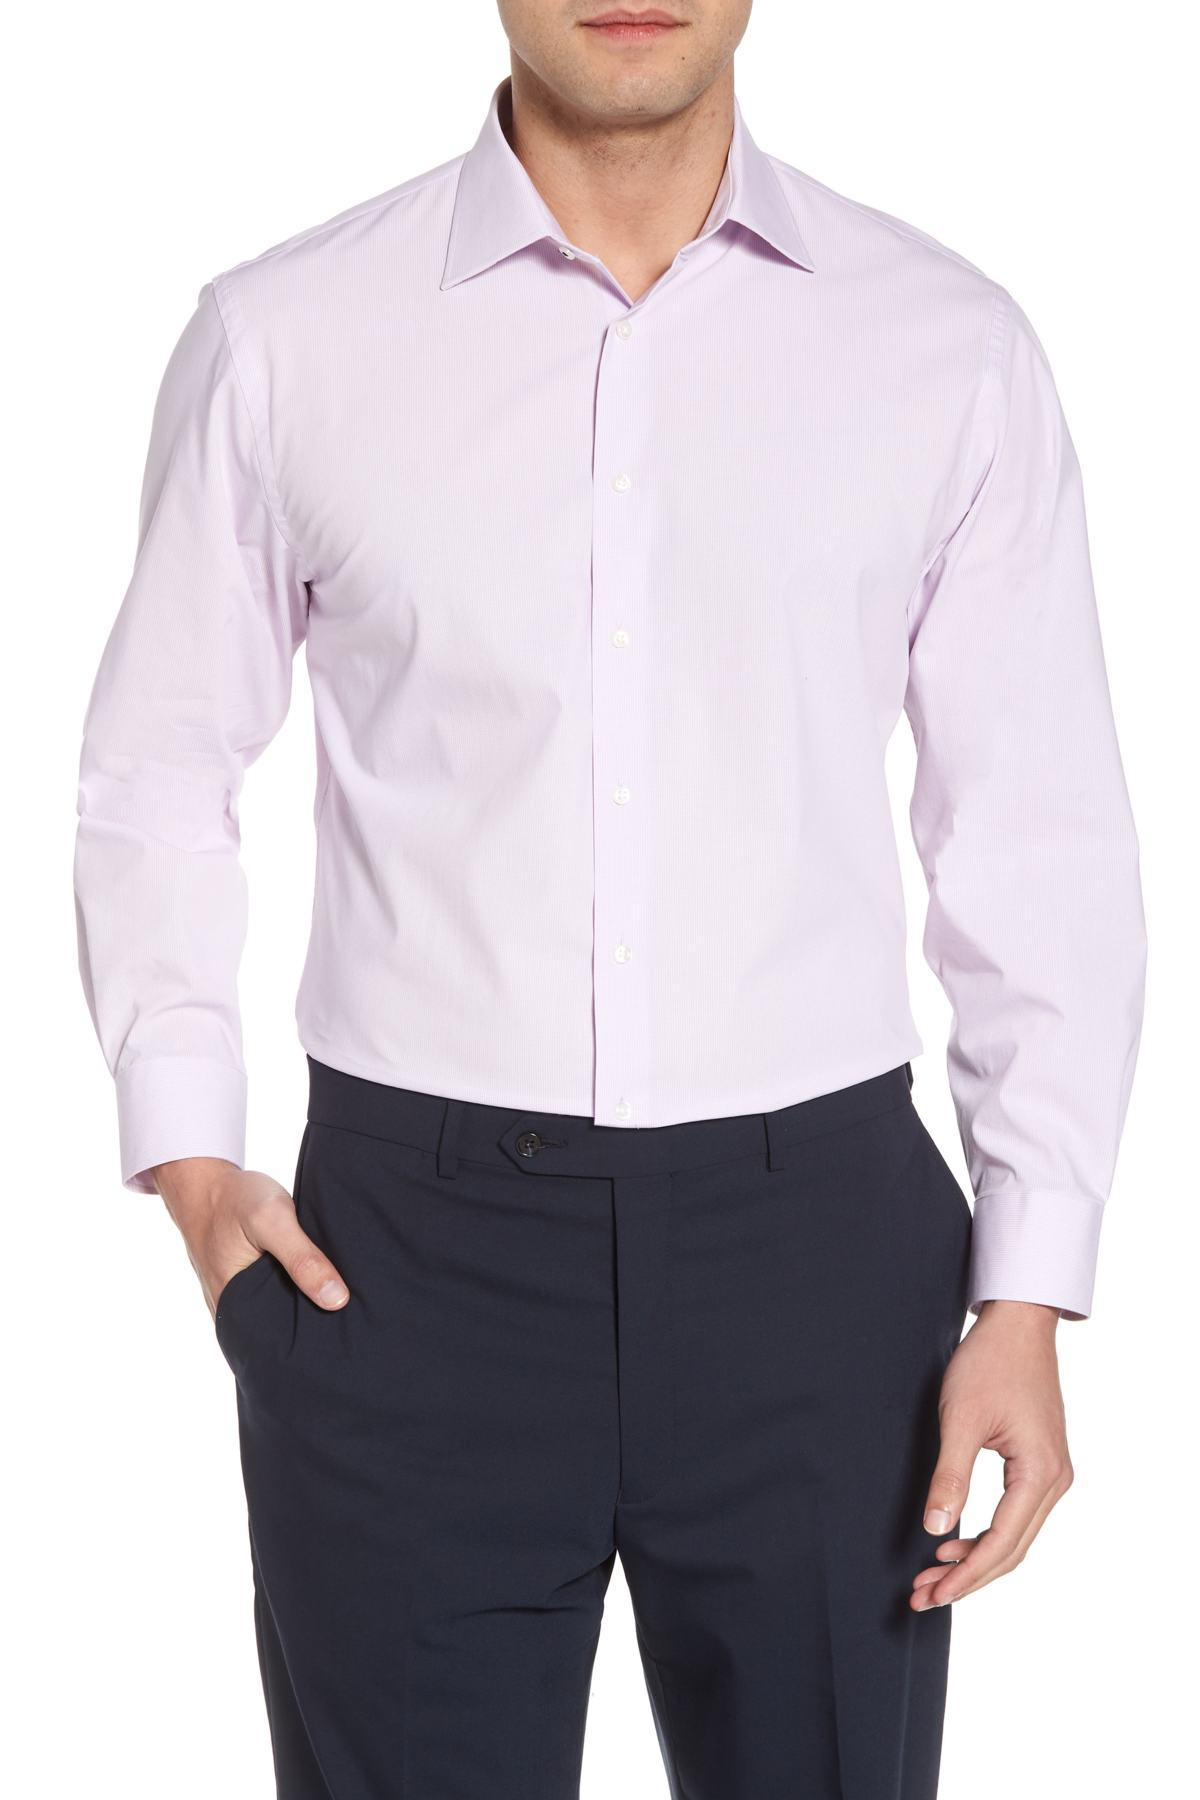 cfac82d86e313a Lyst - Nordstrom Tech-smart Traditional Fit Stretch Microdot Dress ...